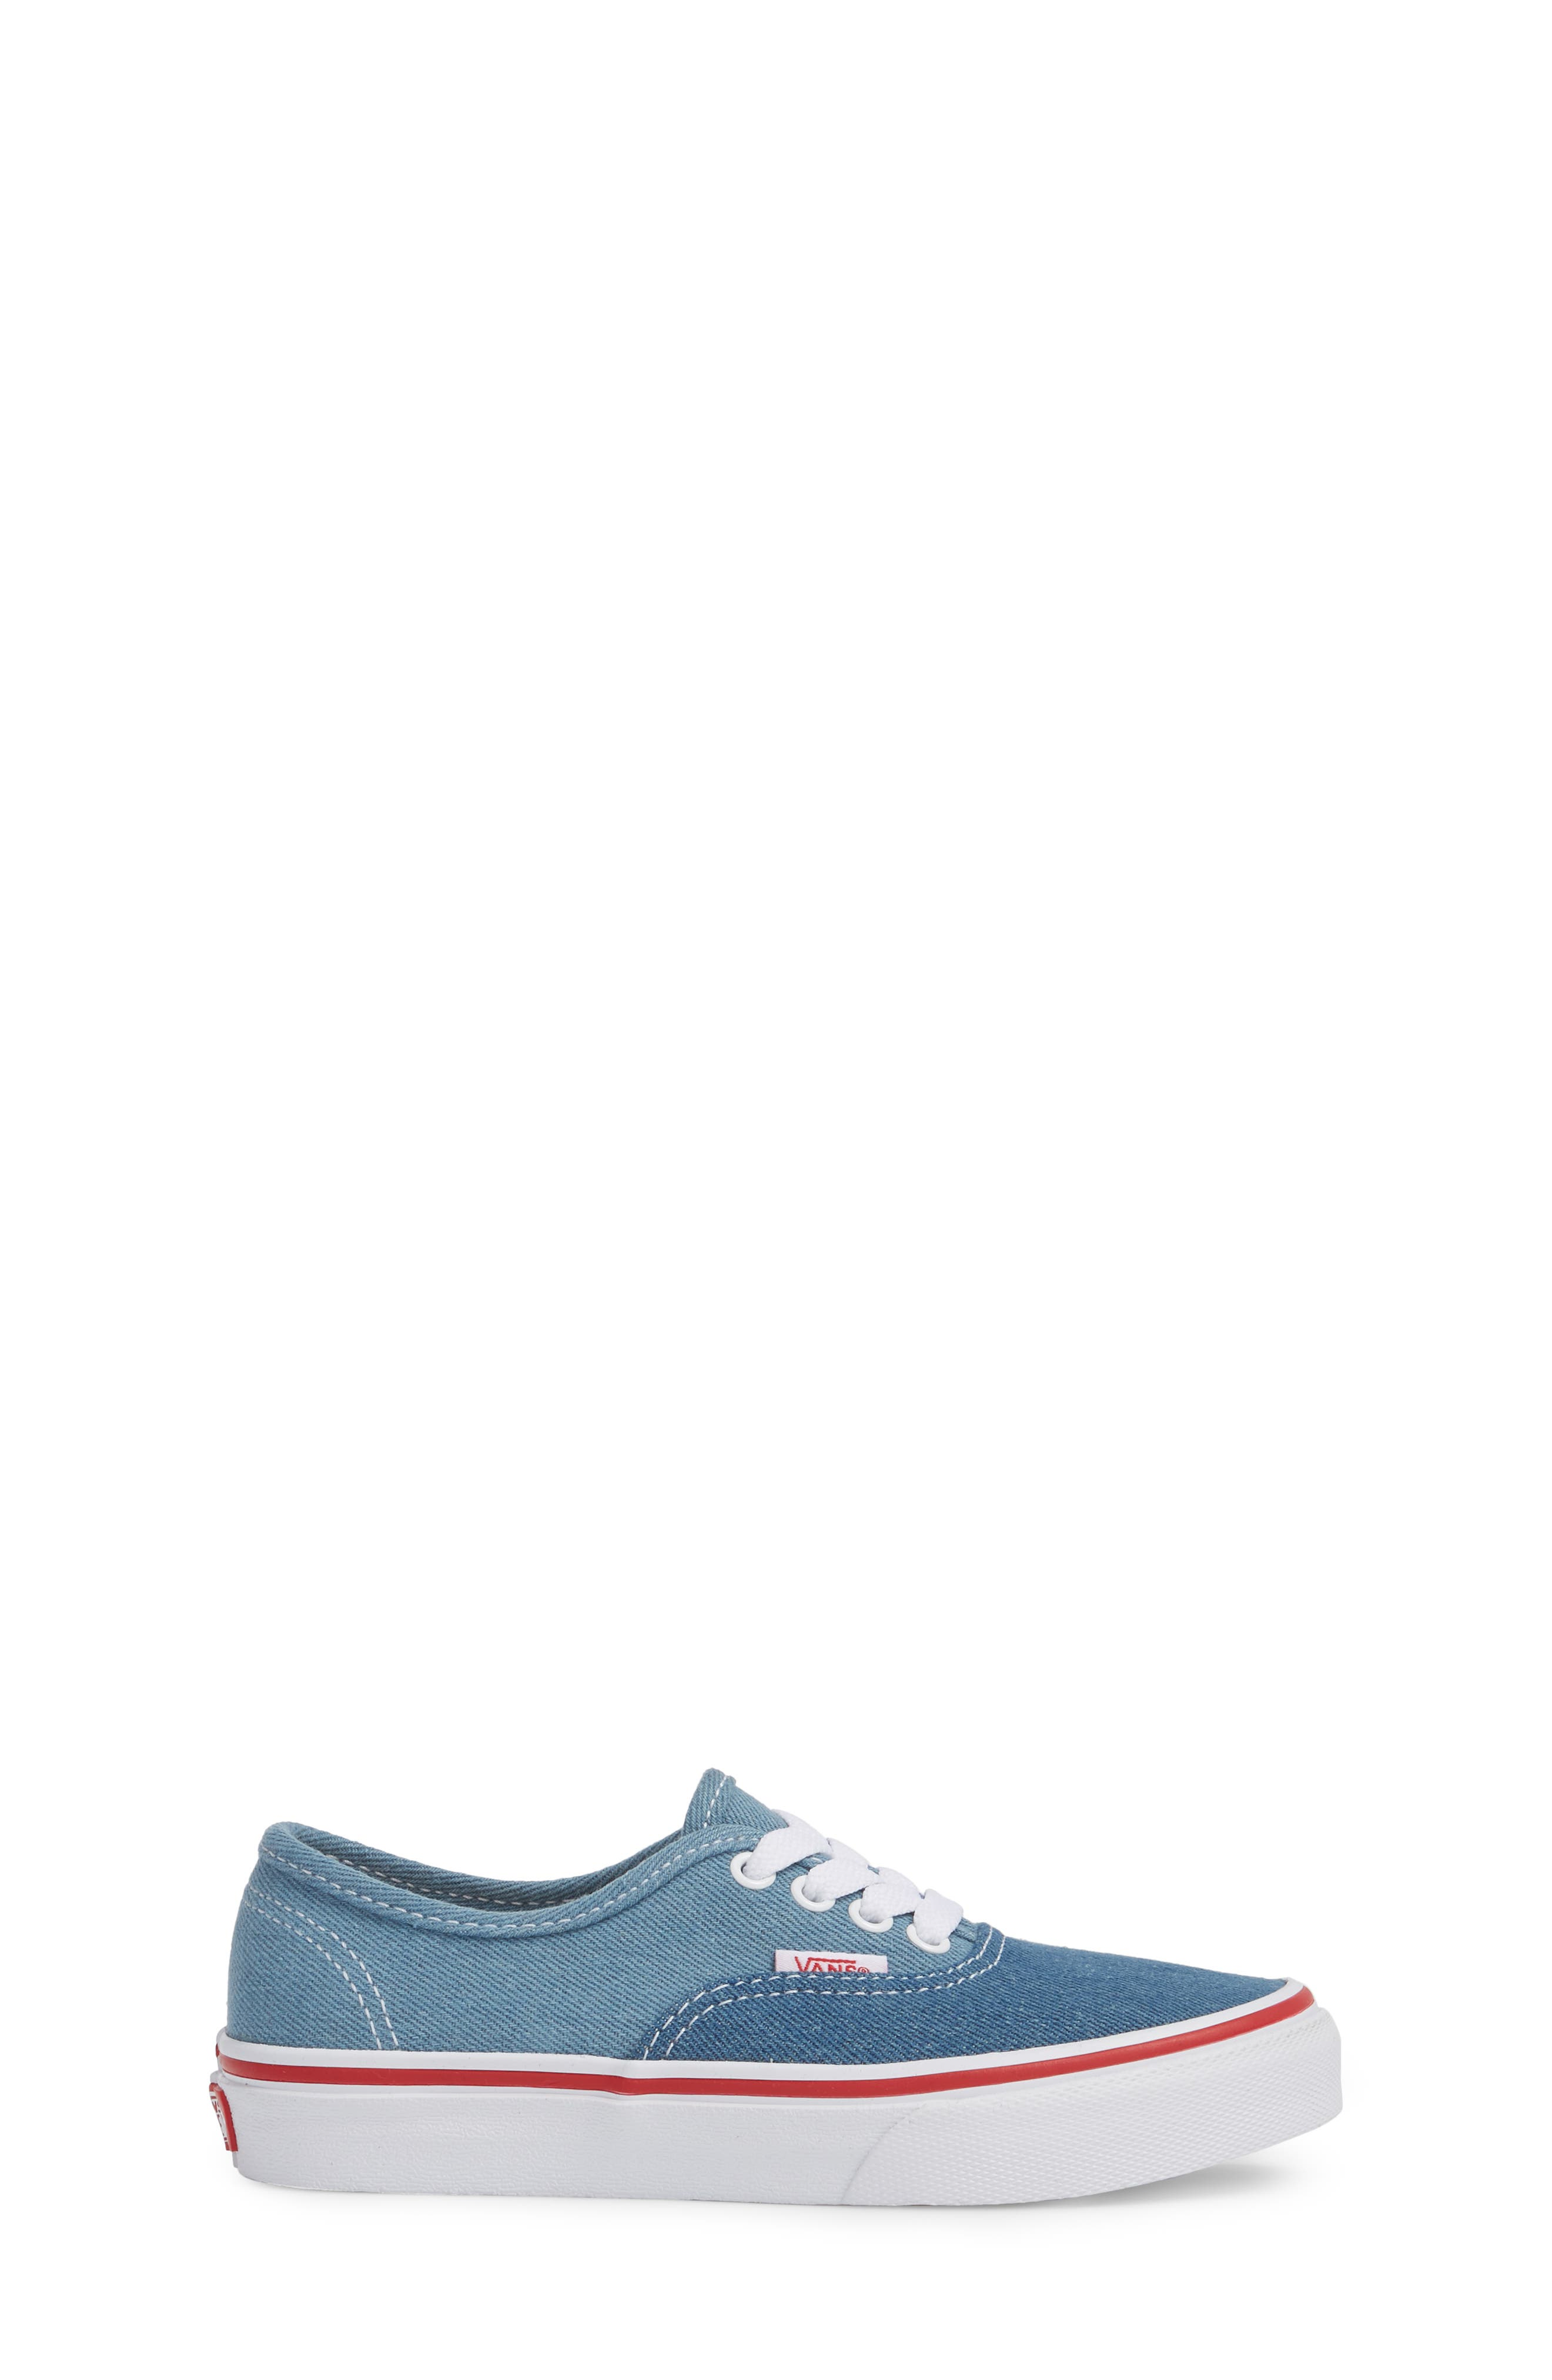 Authentic Sneaker,                             Alternate thumbnail 3, color,                             Blue/ White Denim Two-Tone